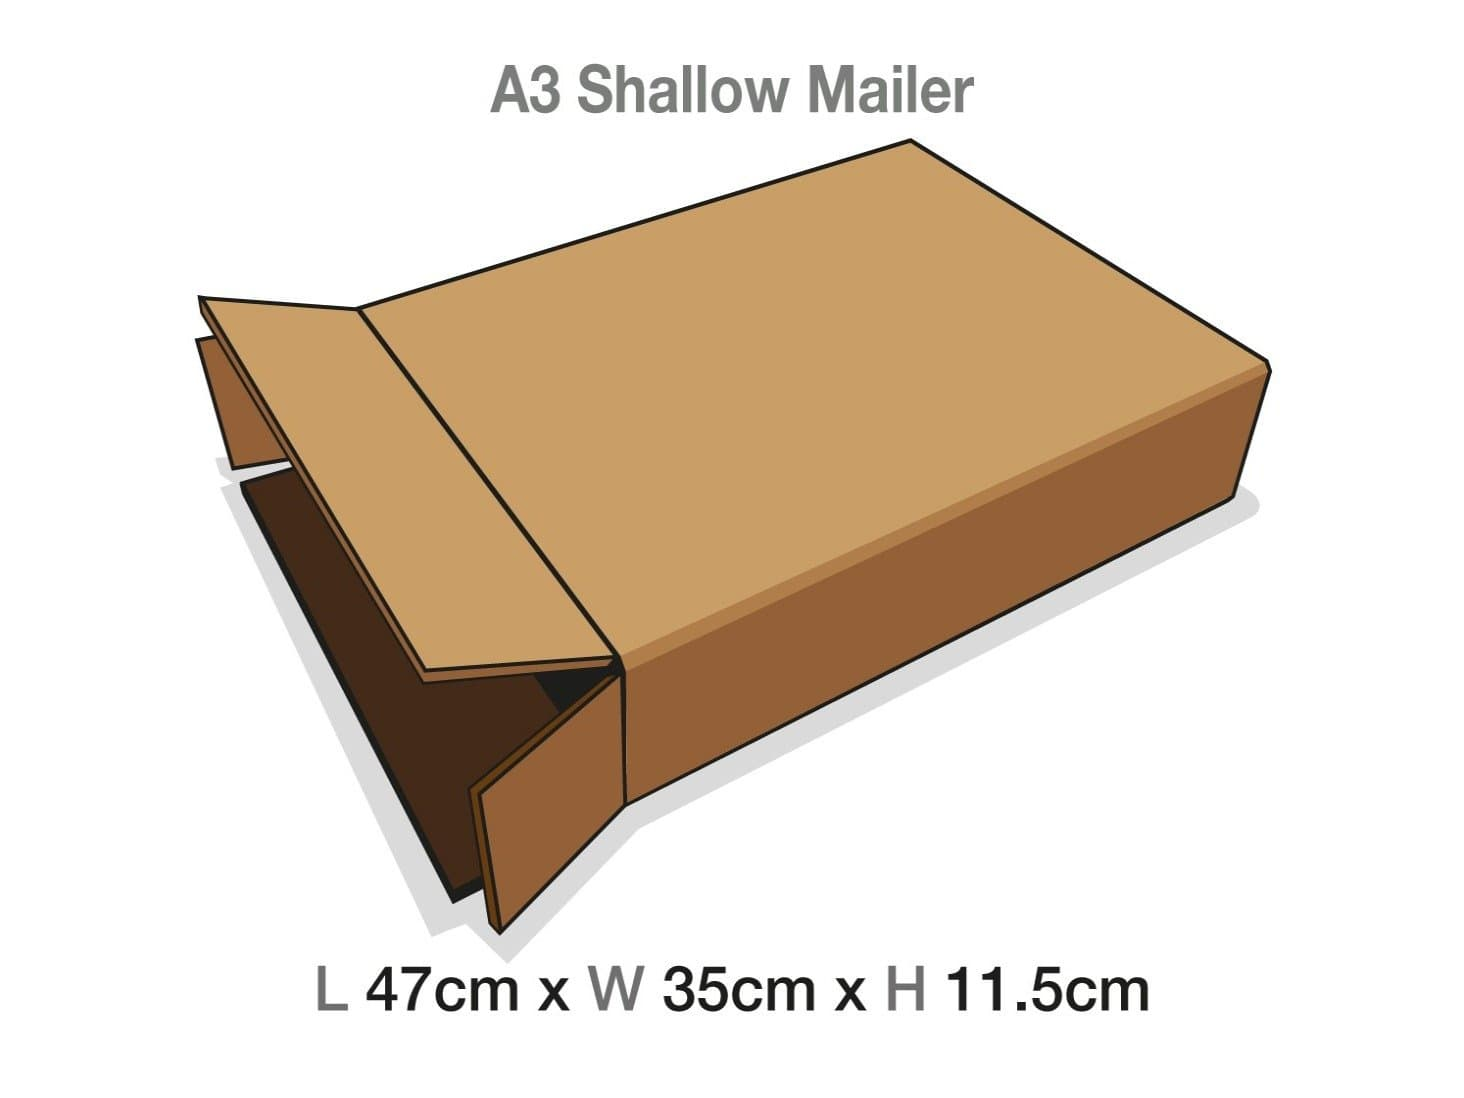 Sample A3 Shallow Gift Box Mailing Carton